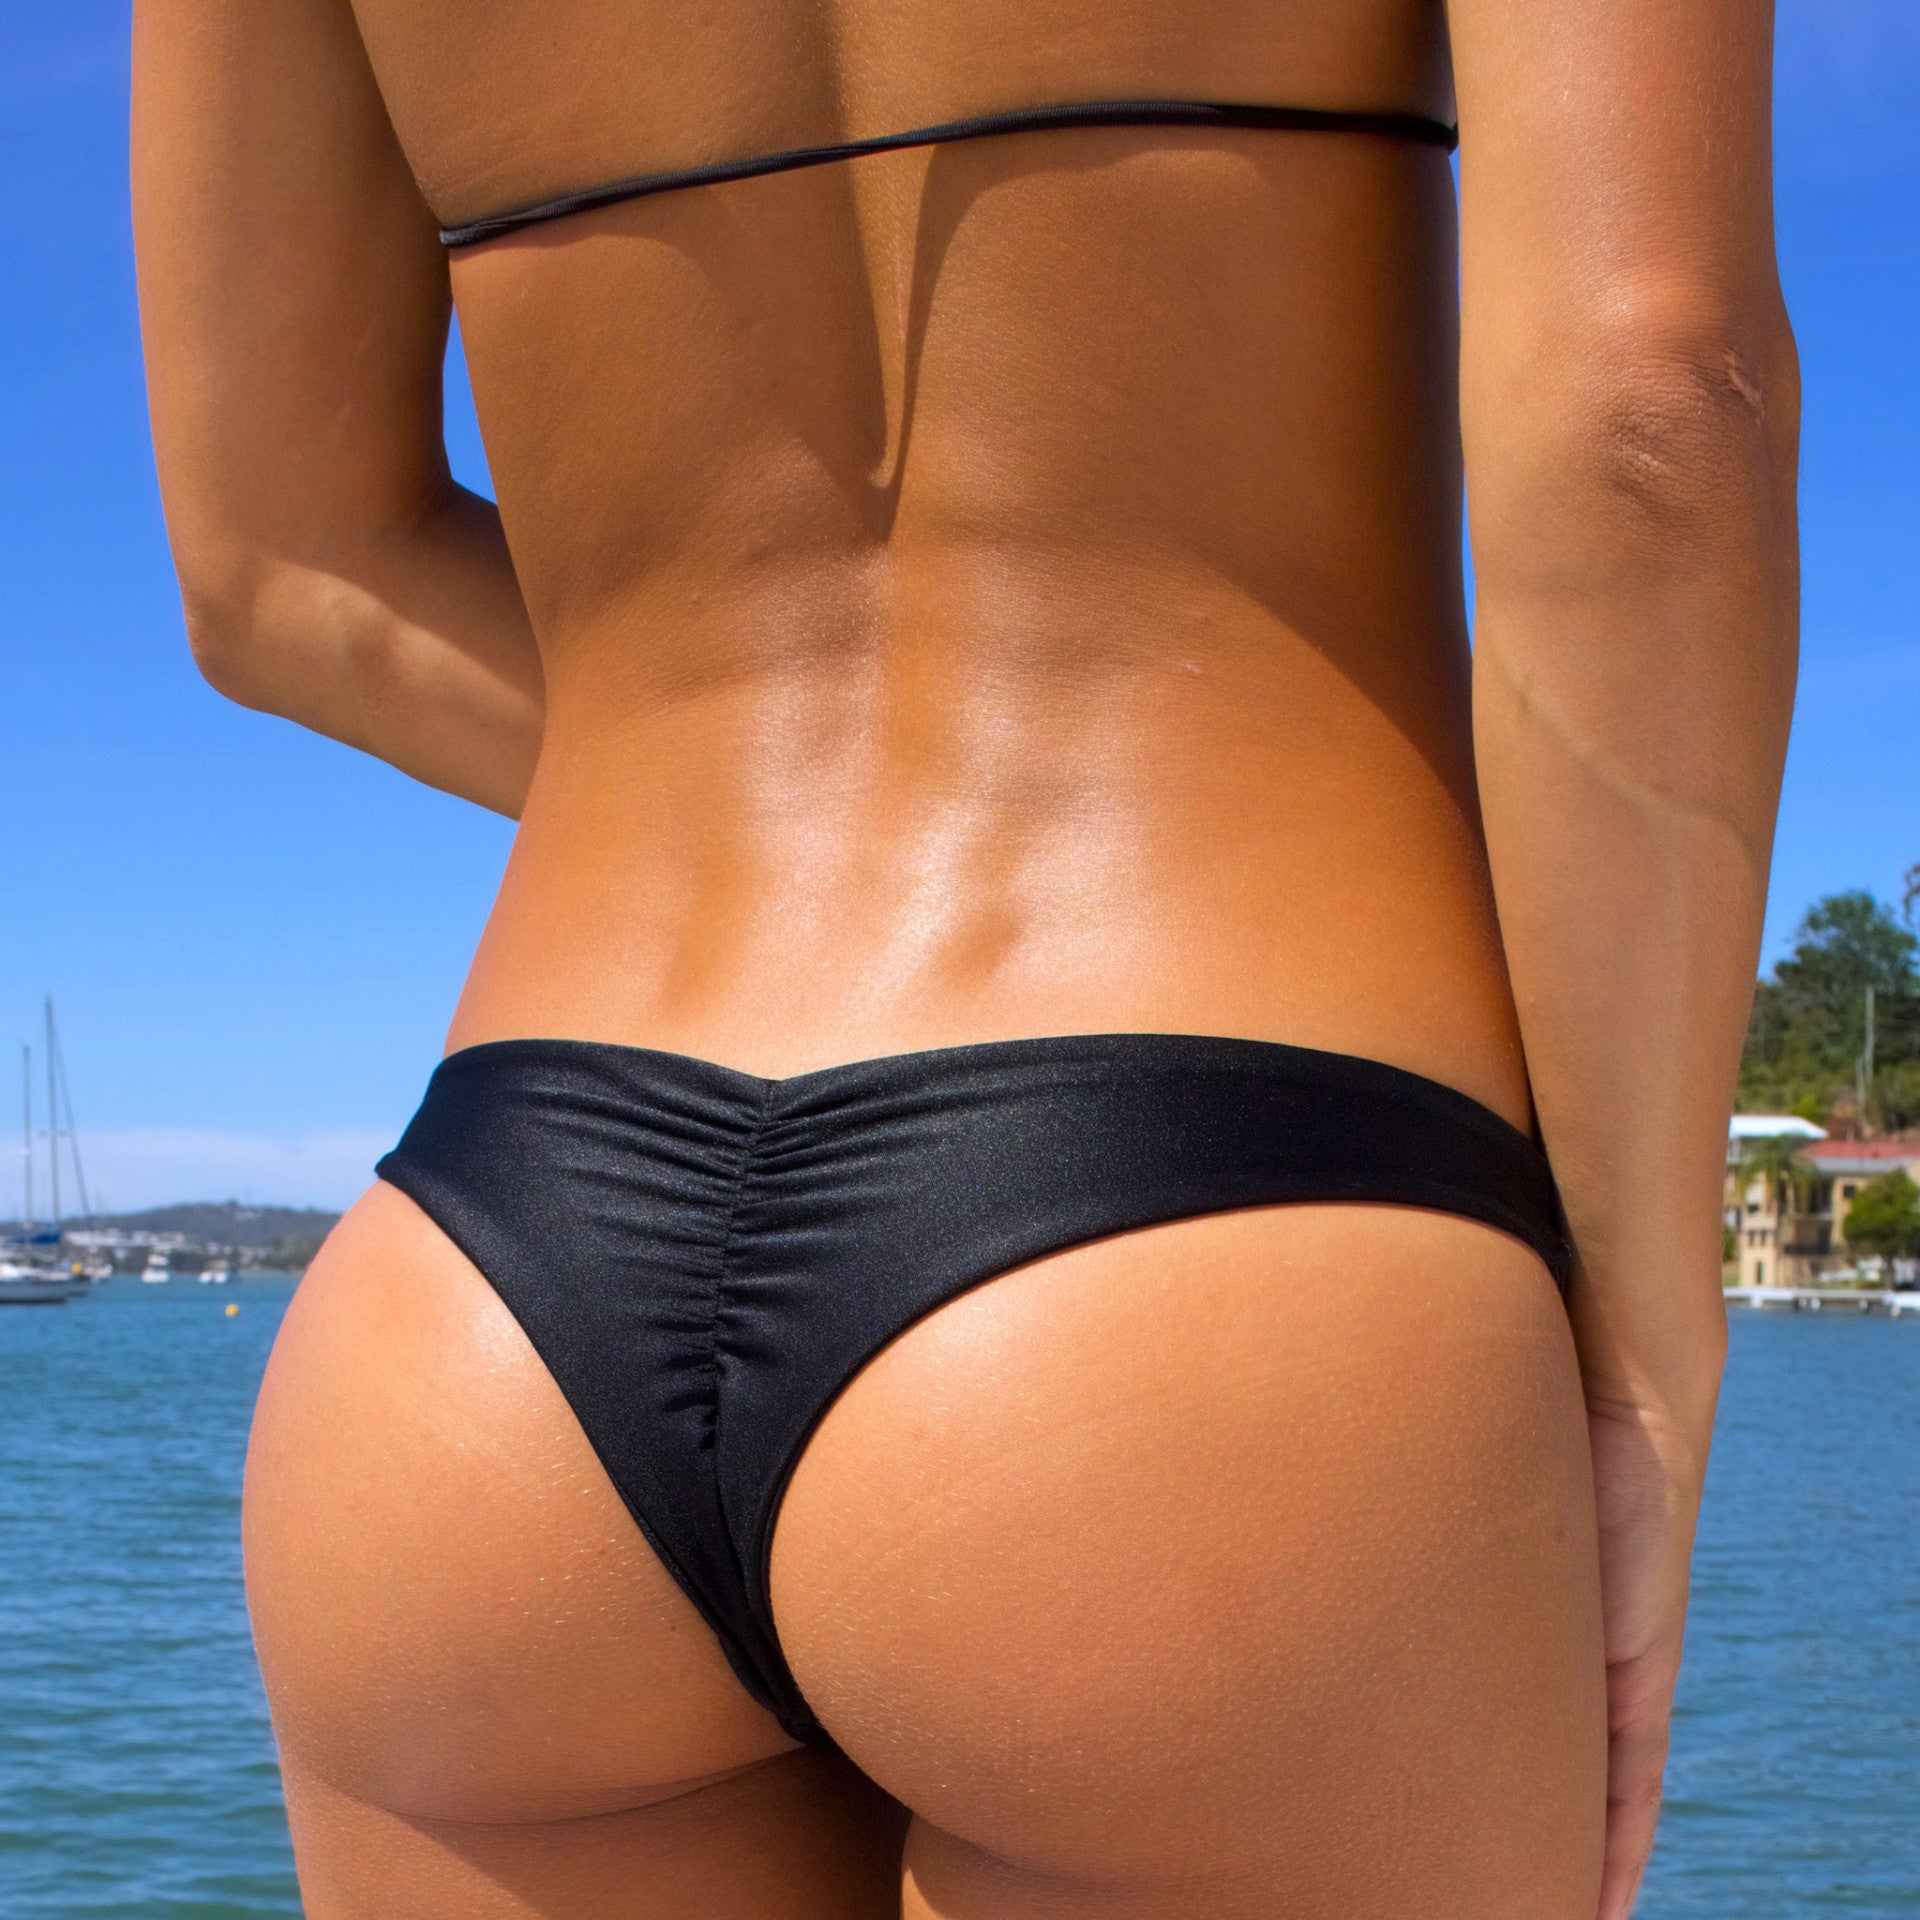 THE LBB (Little Black Bikini)